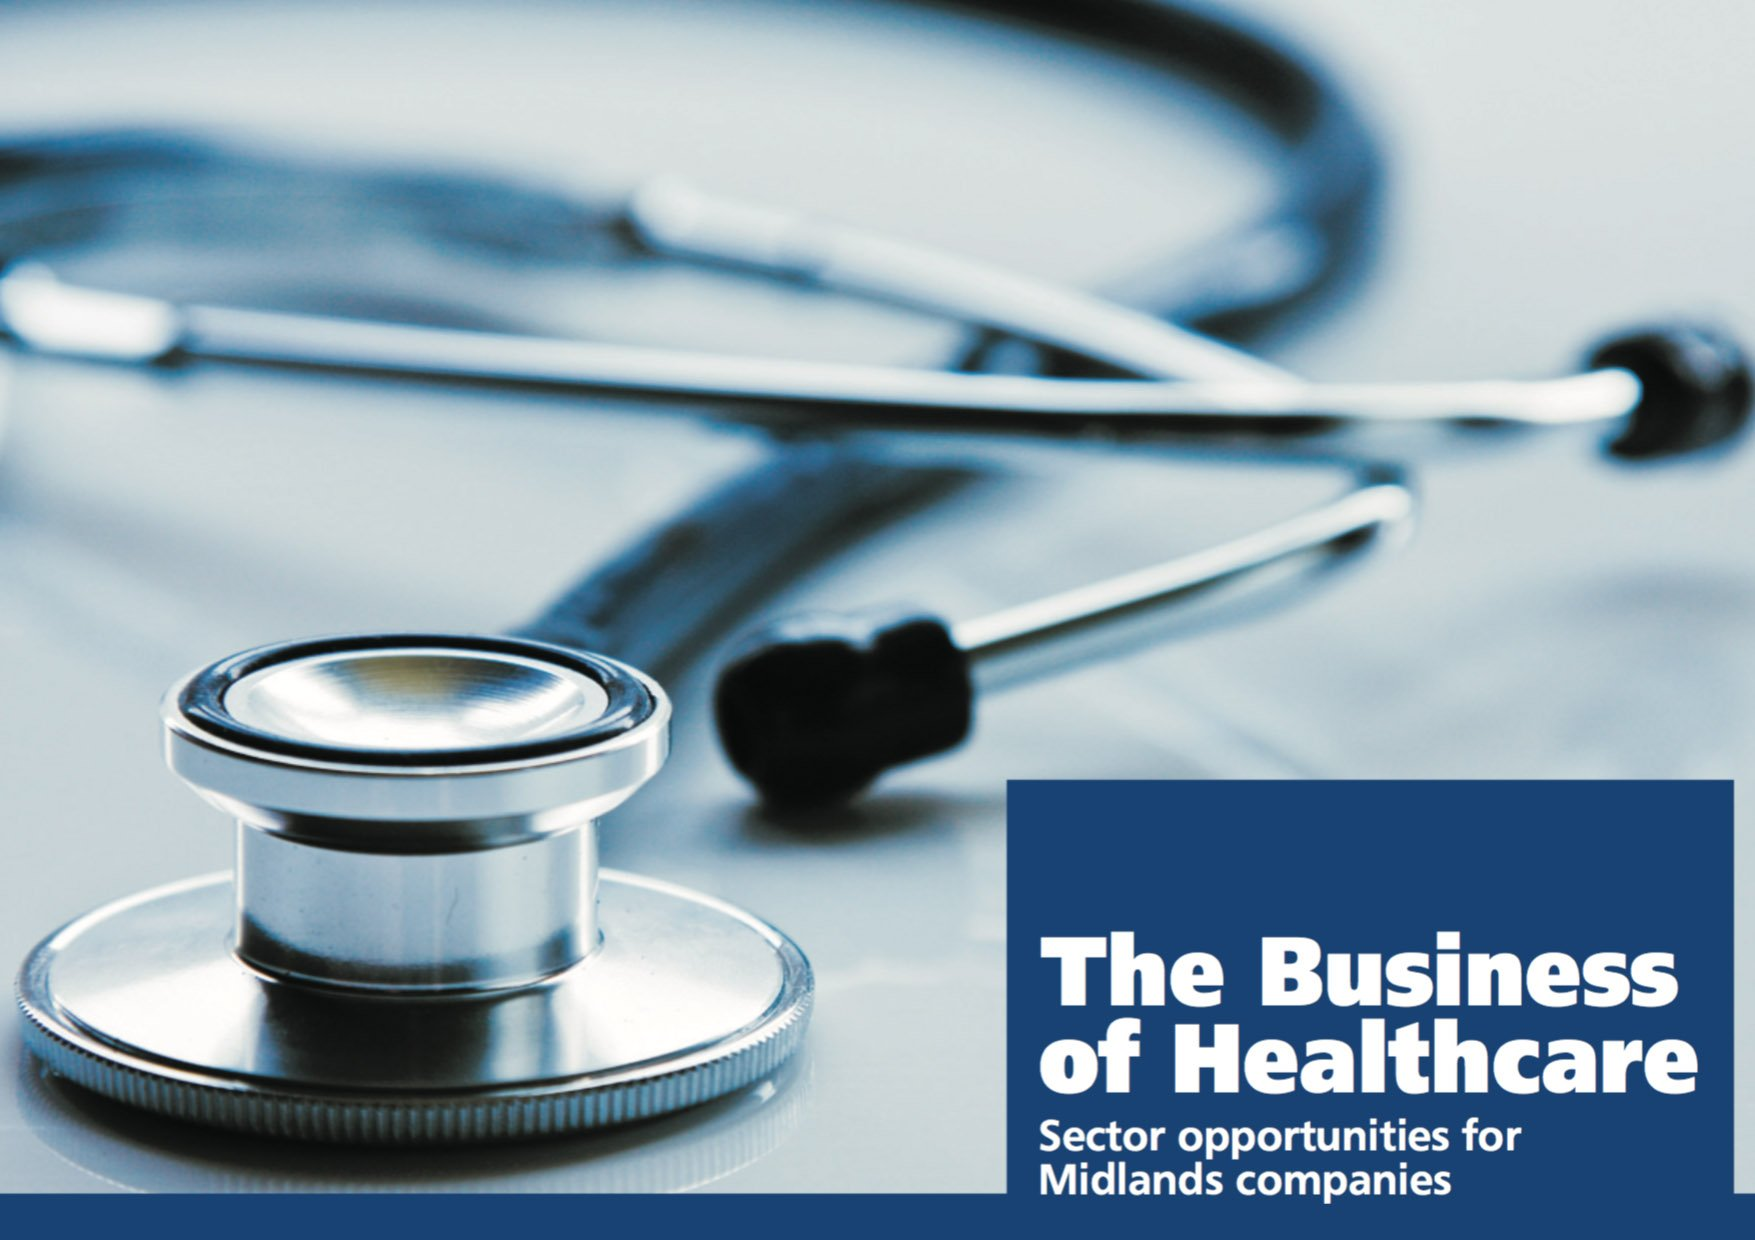 The Business of Healthcare supplement